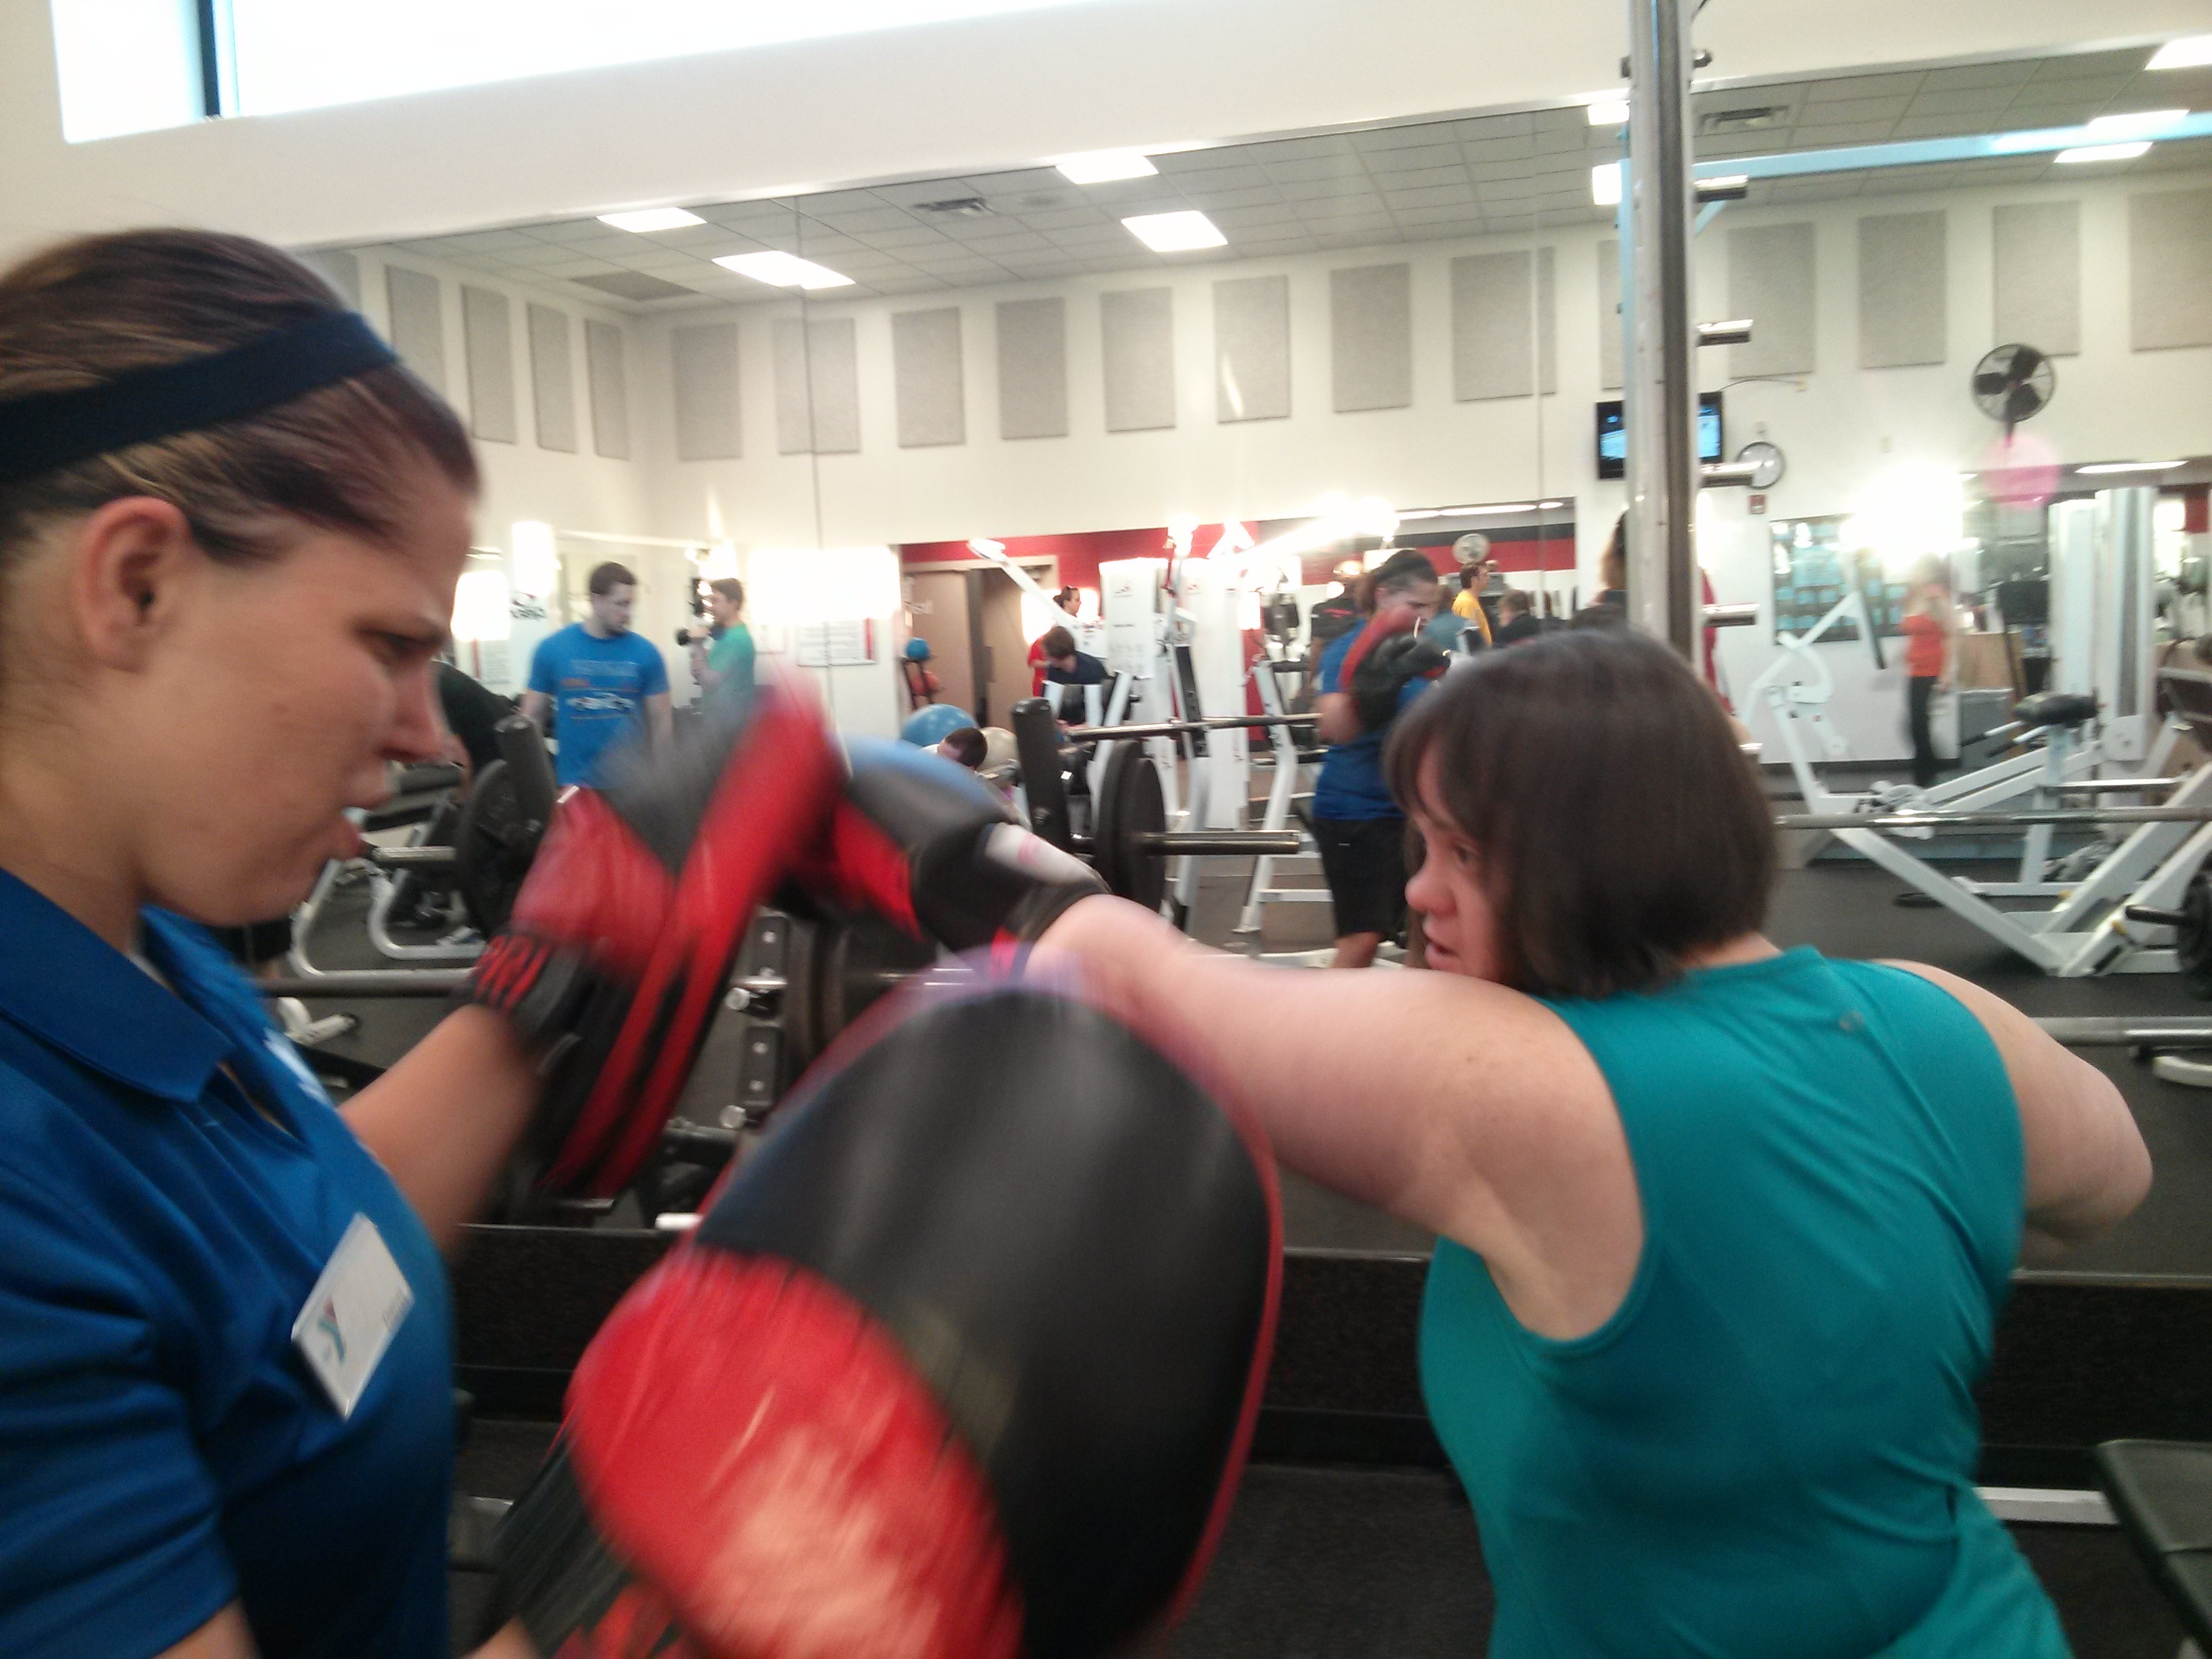 Peggy working out with her trainer.